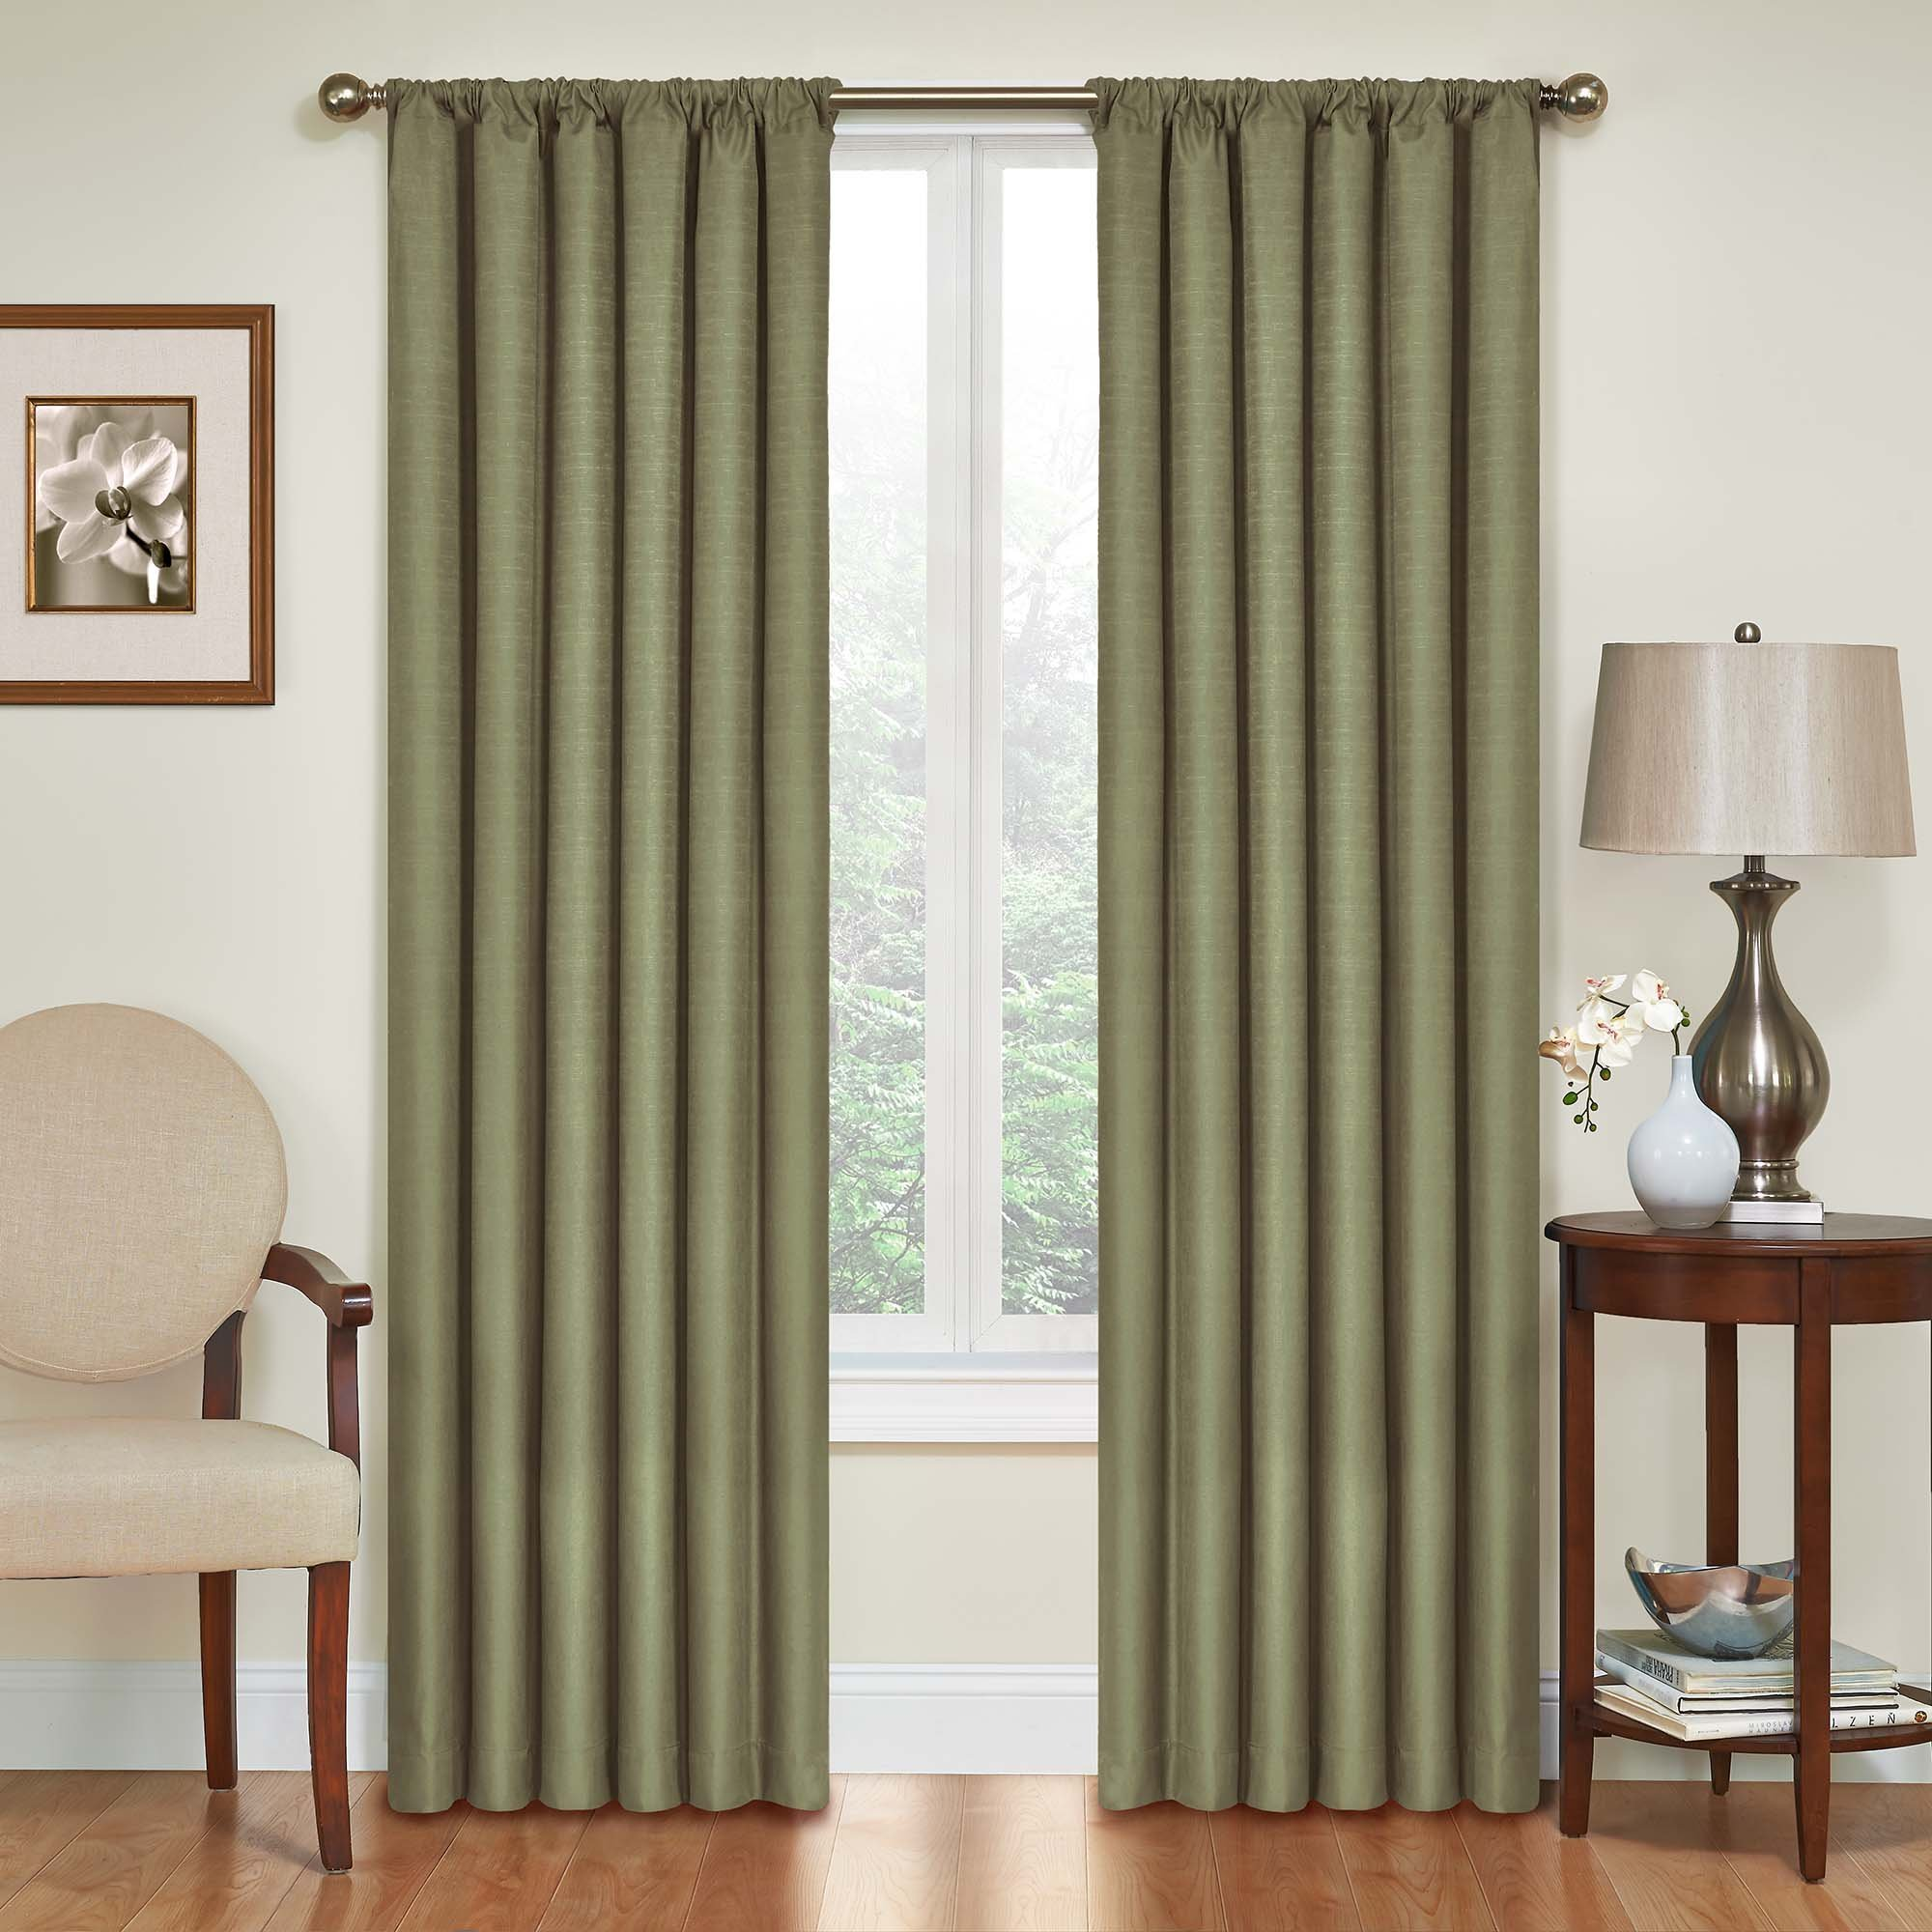 Good Eclipse Blackout Curtains Thermal Curtain Single Panel 42